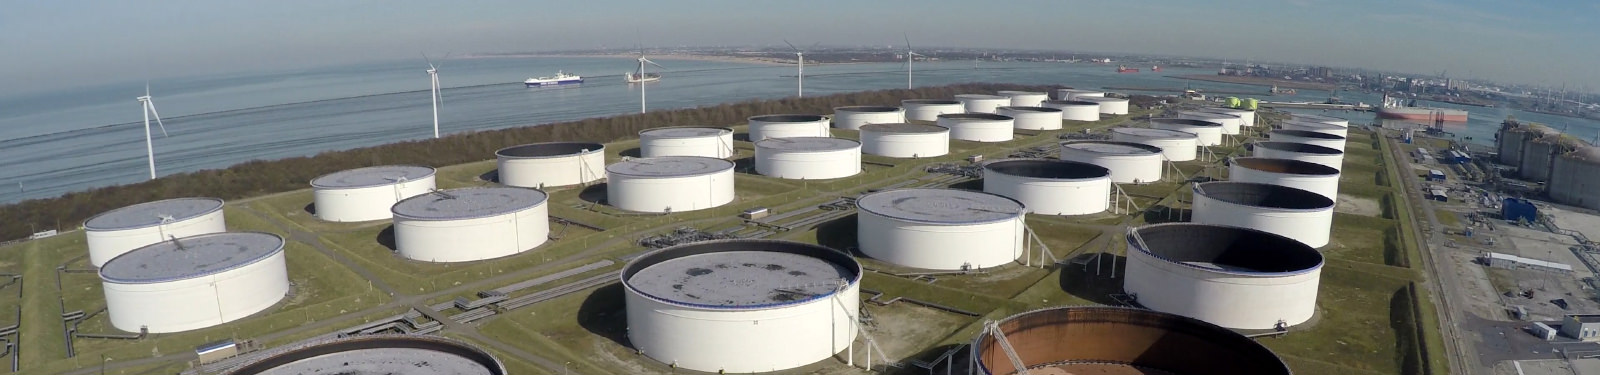 Terminals, Tank Farms & Storage